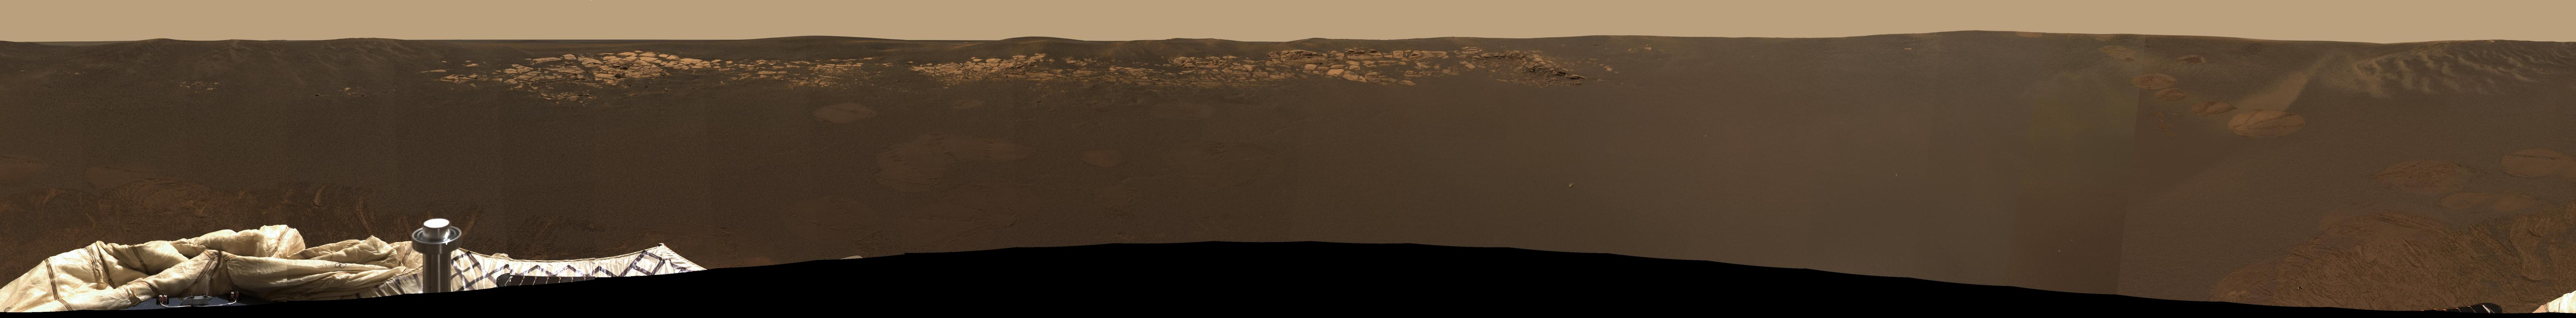 This expansive view of the martian real estate surrounding the Mars Exploration Rover Opportunity is the first 360 degree, high-resolution color image taken by the rover's panoramic camera.